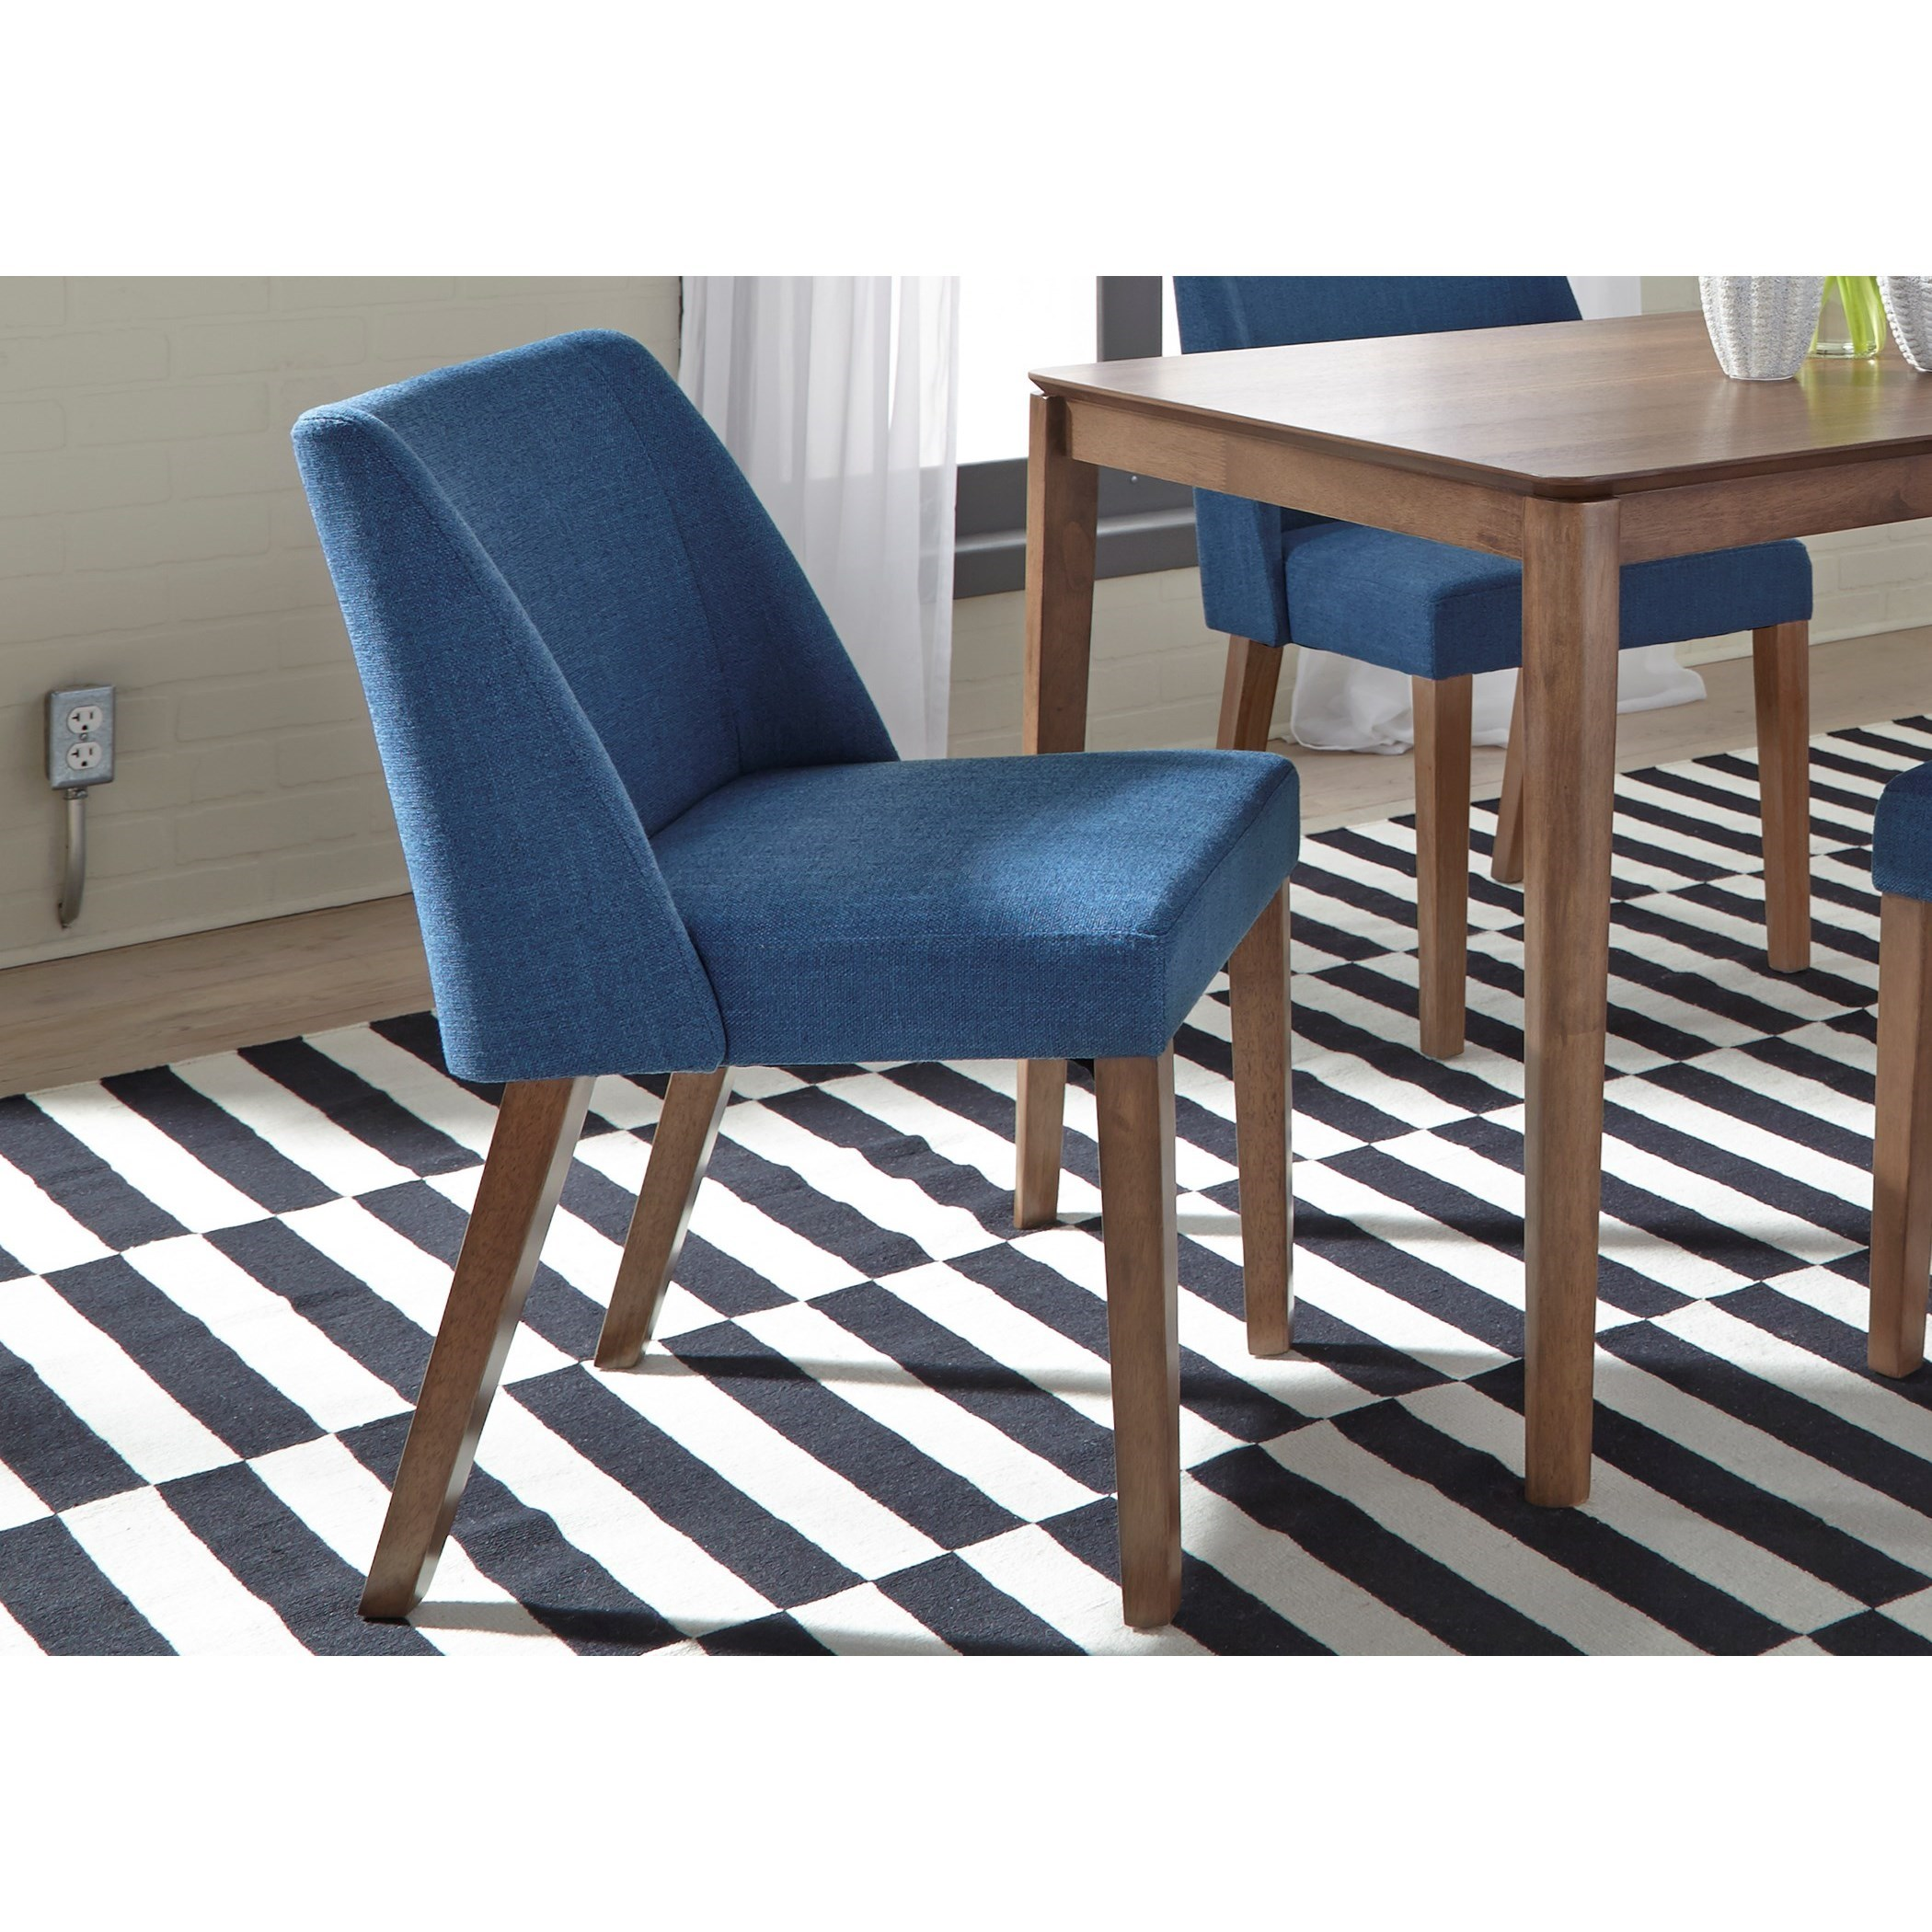 Space Savers Nido Chair  by Libby at Walker's Furniture